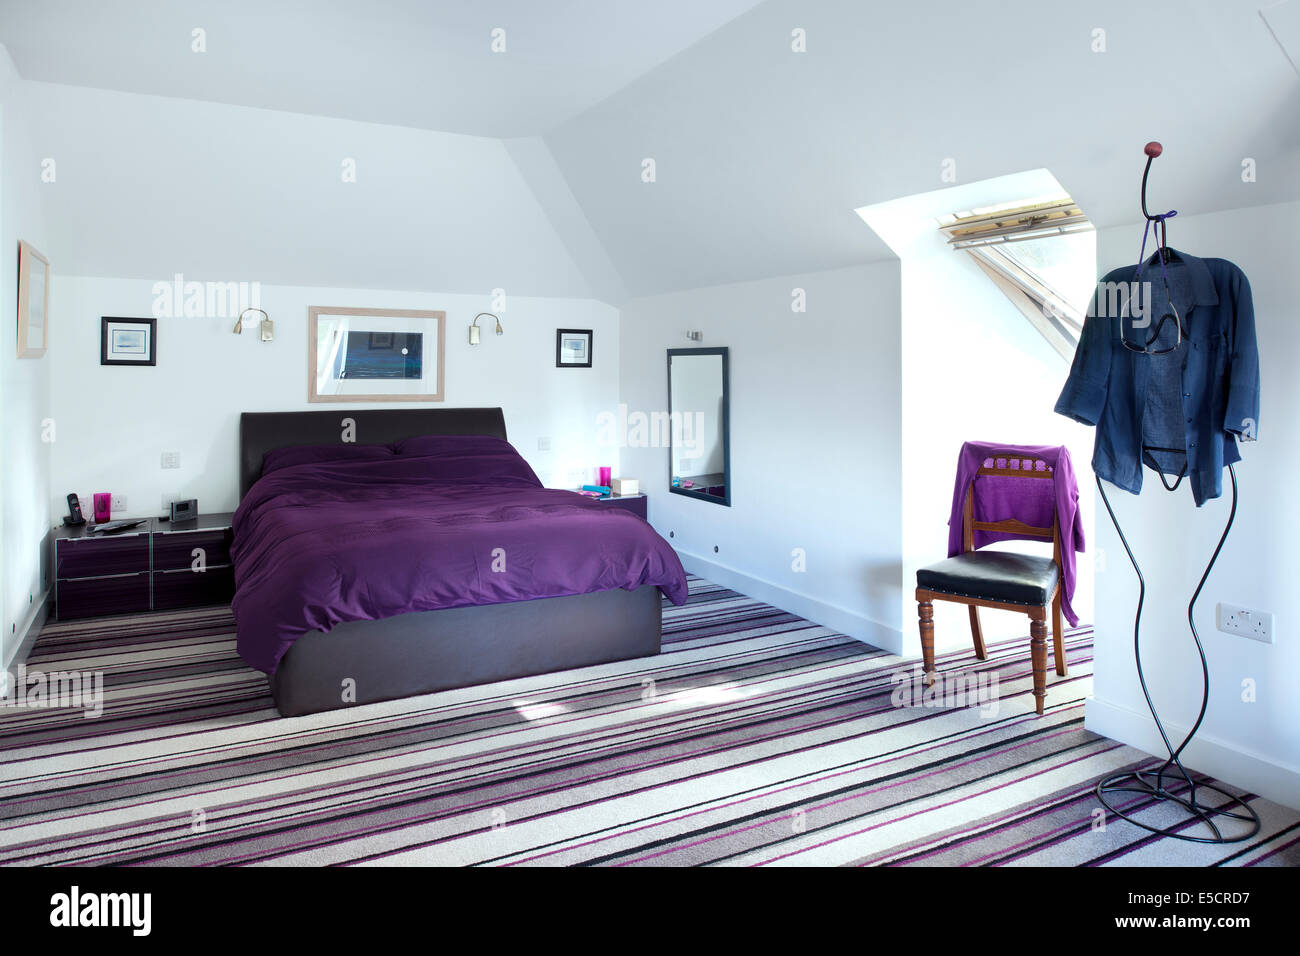 Master Bedroom With Striped Carpet In Uk Home Stock Photo Royalty Free Image 72196579 Alamy